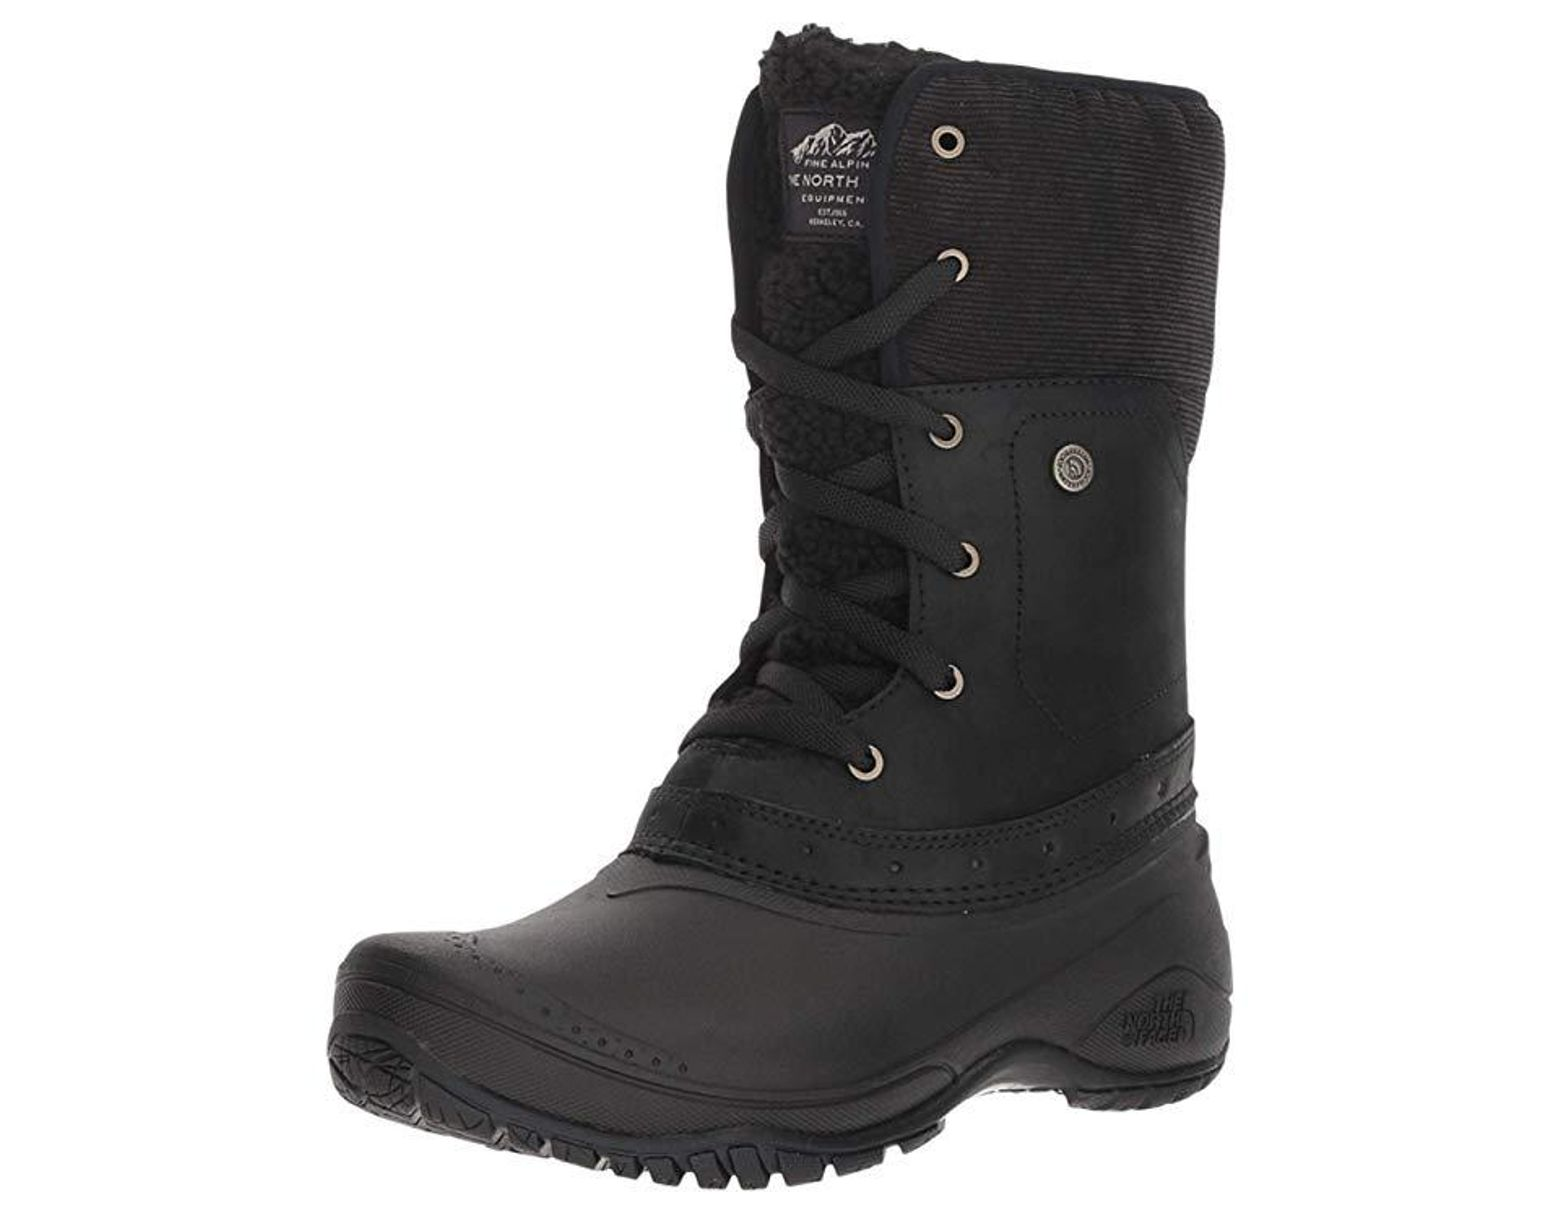 f422874674a18 The North Face Shellista Roll-down (tnf Black/weathered Black) Cold Weather Boots  in Black - Save 21% - Lyst